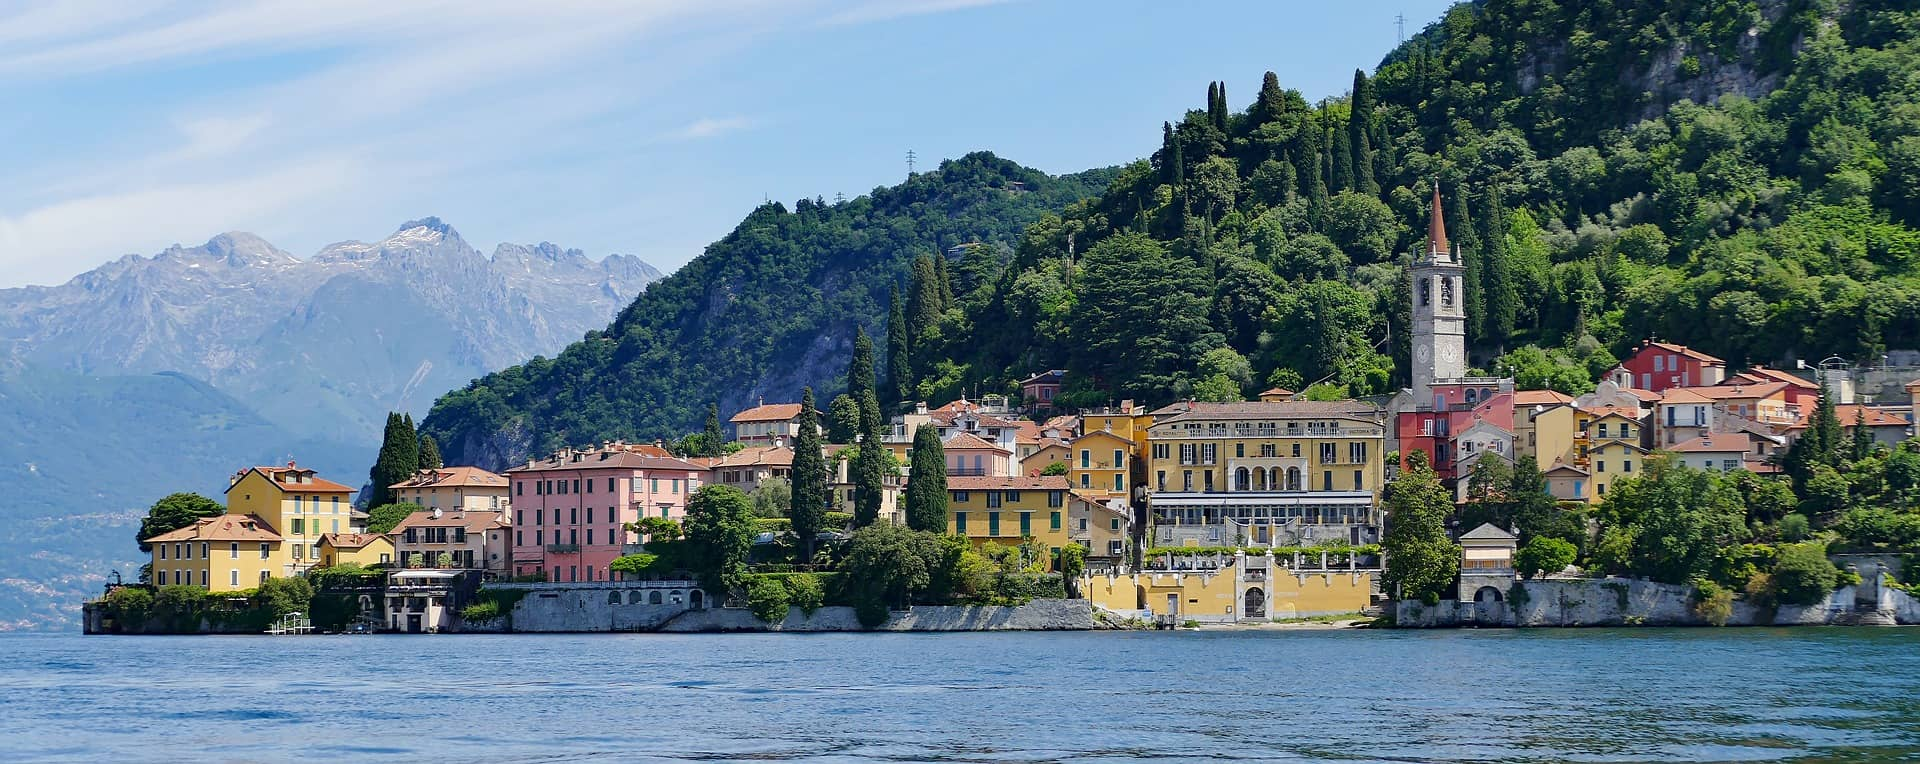 T here's never a bad time to explore Lake Como's outdoor offerings, with its gorgeous walking, hiking and cycling trails that offer panoramic lake